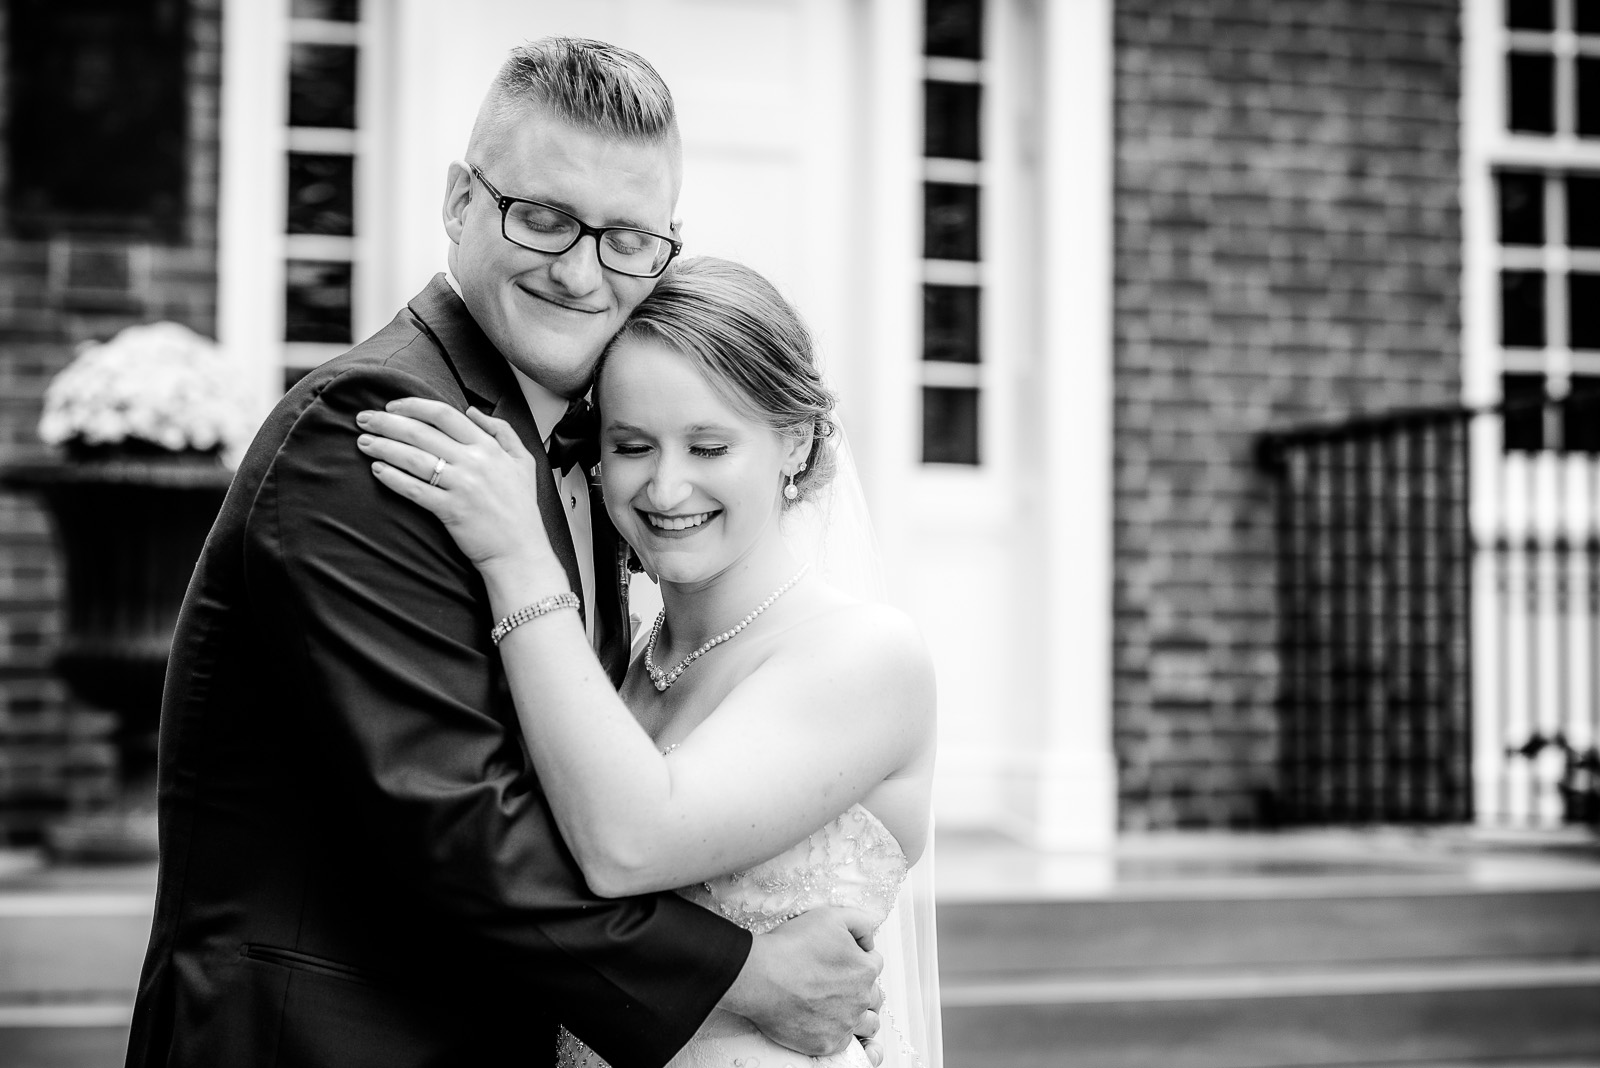 Eric_and_Christy_Photography_Blog_Wedding_Erica_Mike-35